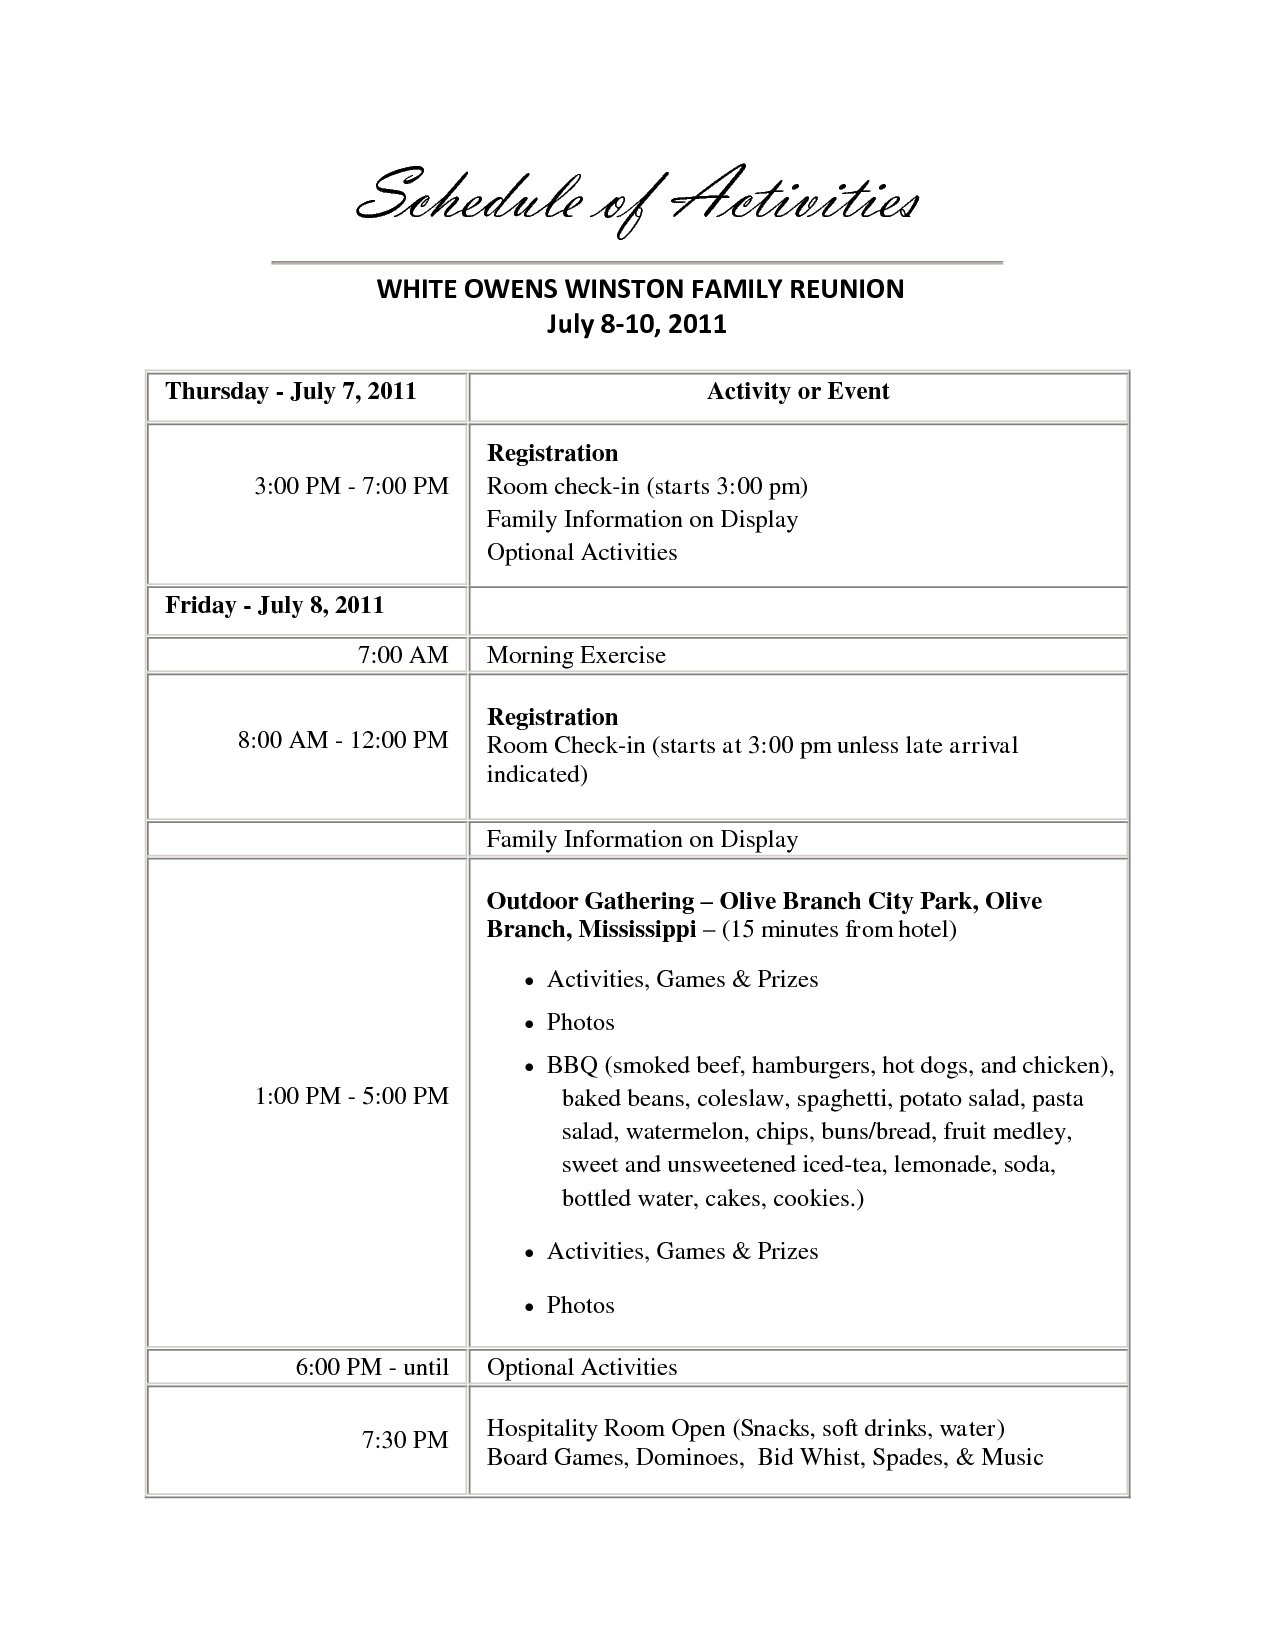 10 Trendy Family Reunion Games And Ideas family reunion games document sample nielsen reunion 2015 2020